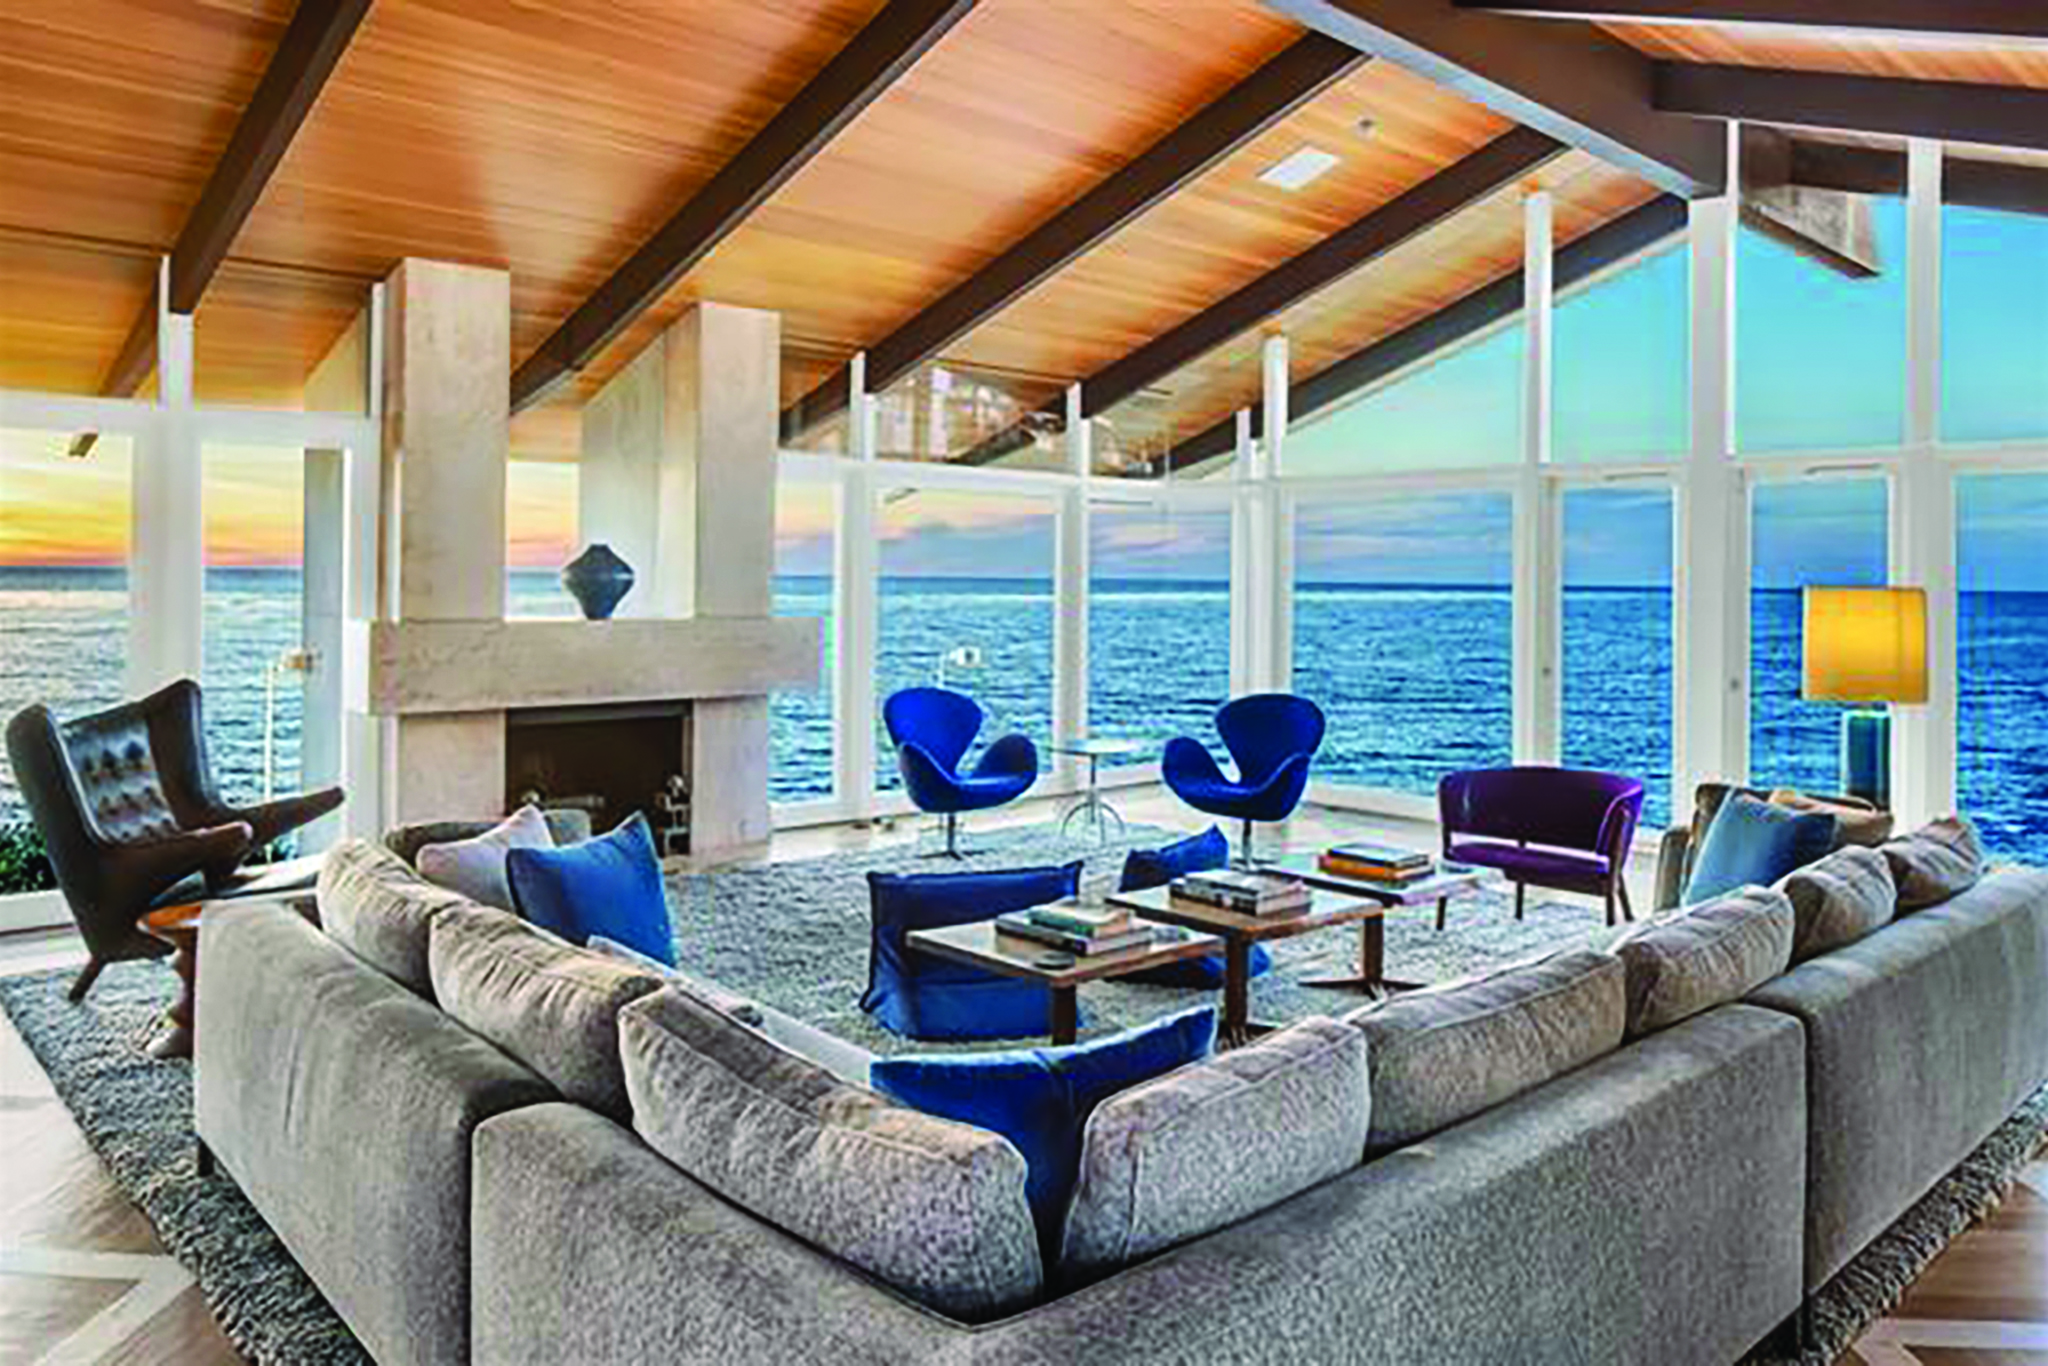 Lower Hermosa La Jolla home sports Frank Lloyd Wright inspired architecture and ocean views of Winansea Beach